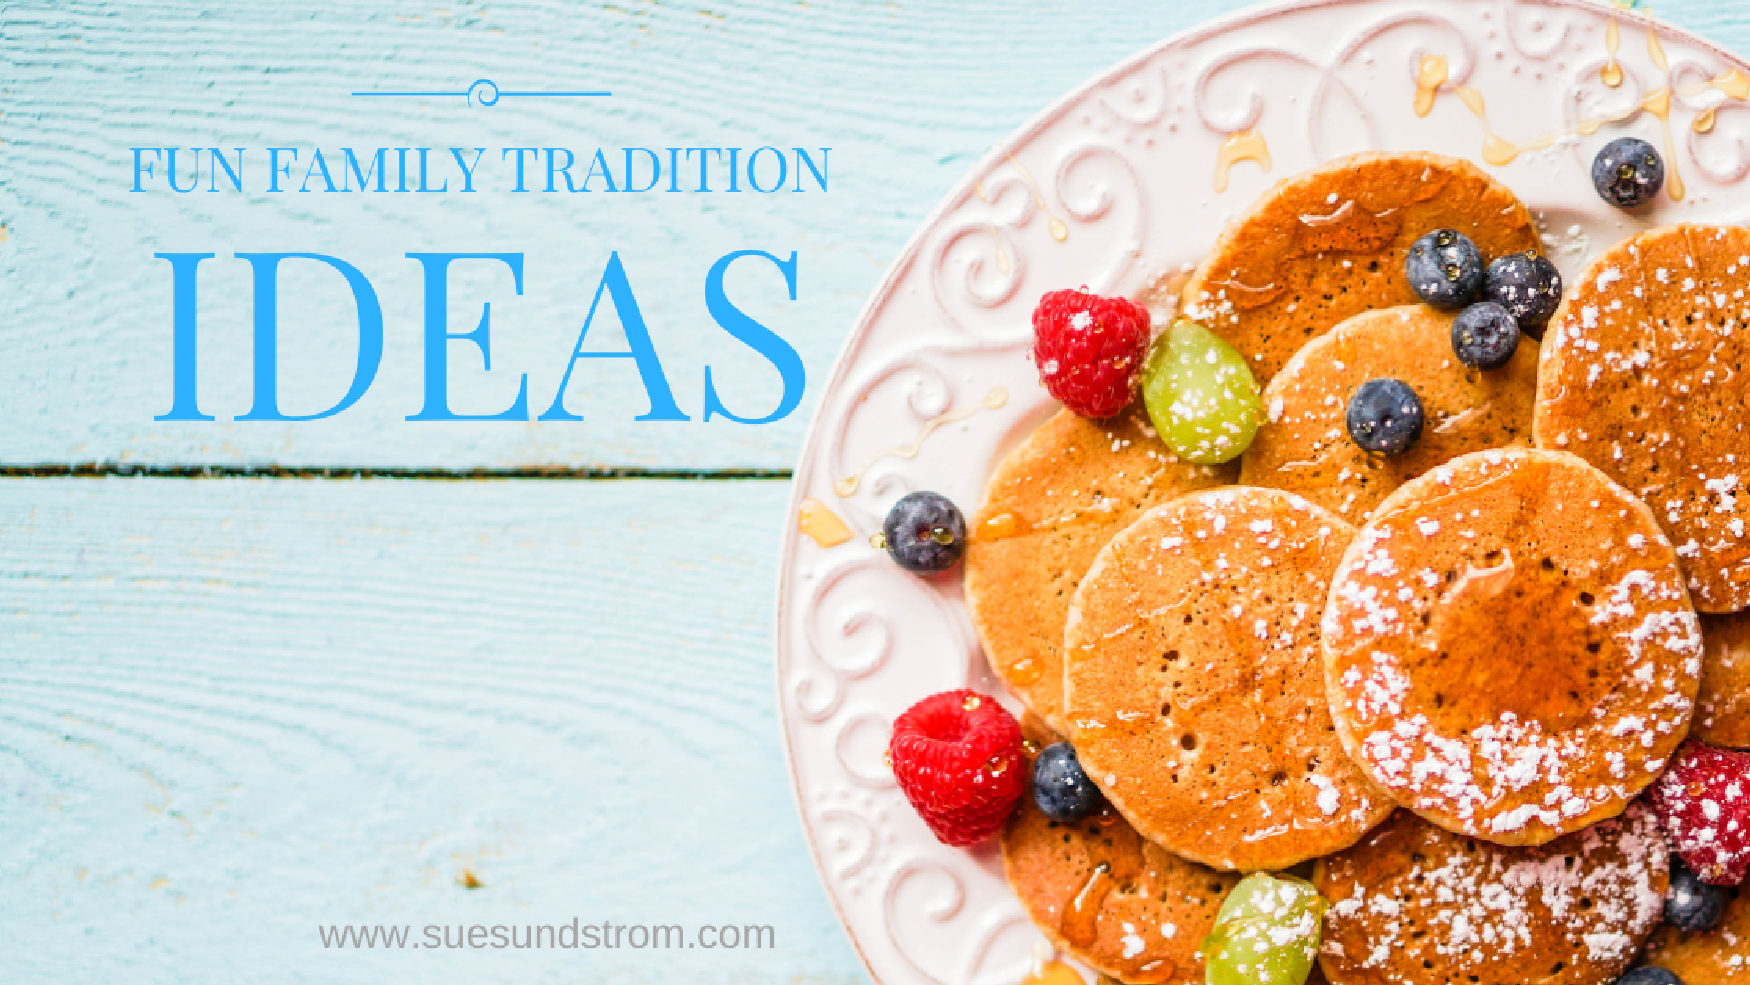 Fun Family Tradition ideas: Month by Month